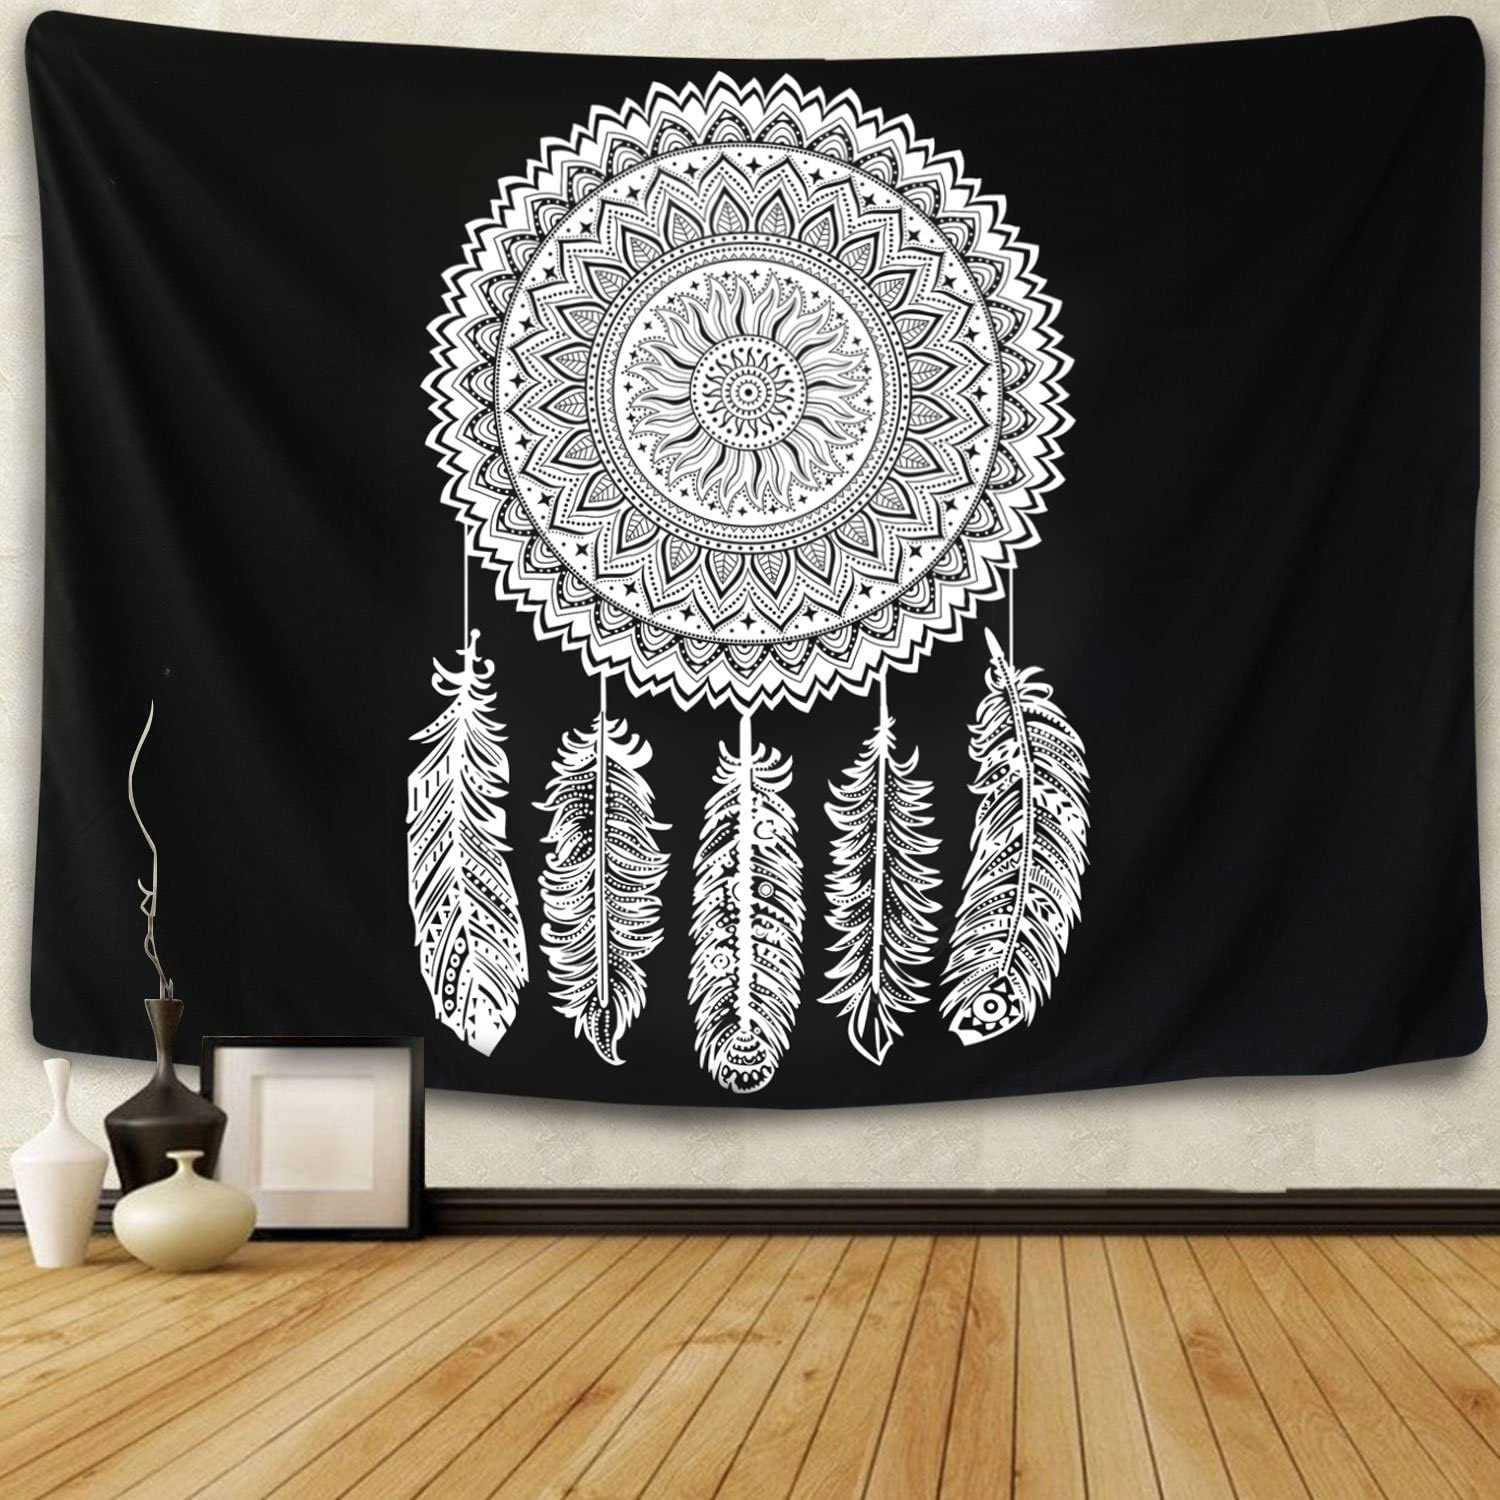 Tapestry Wall Hanging Dreamcatcher Black and White Tapestry Flower Mandala Feather Tapestry Indian Bohemian Hippie Wall Art for Living Room Bedroom Dorm Decor